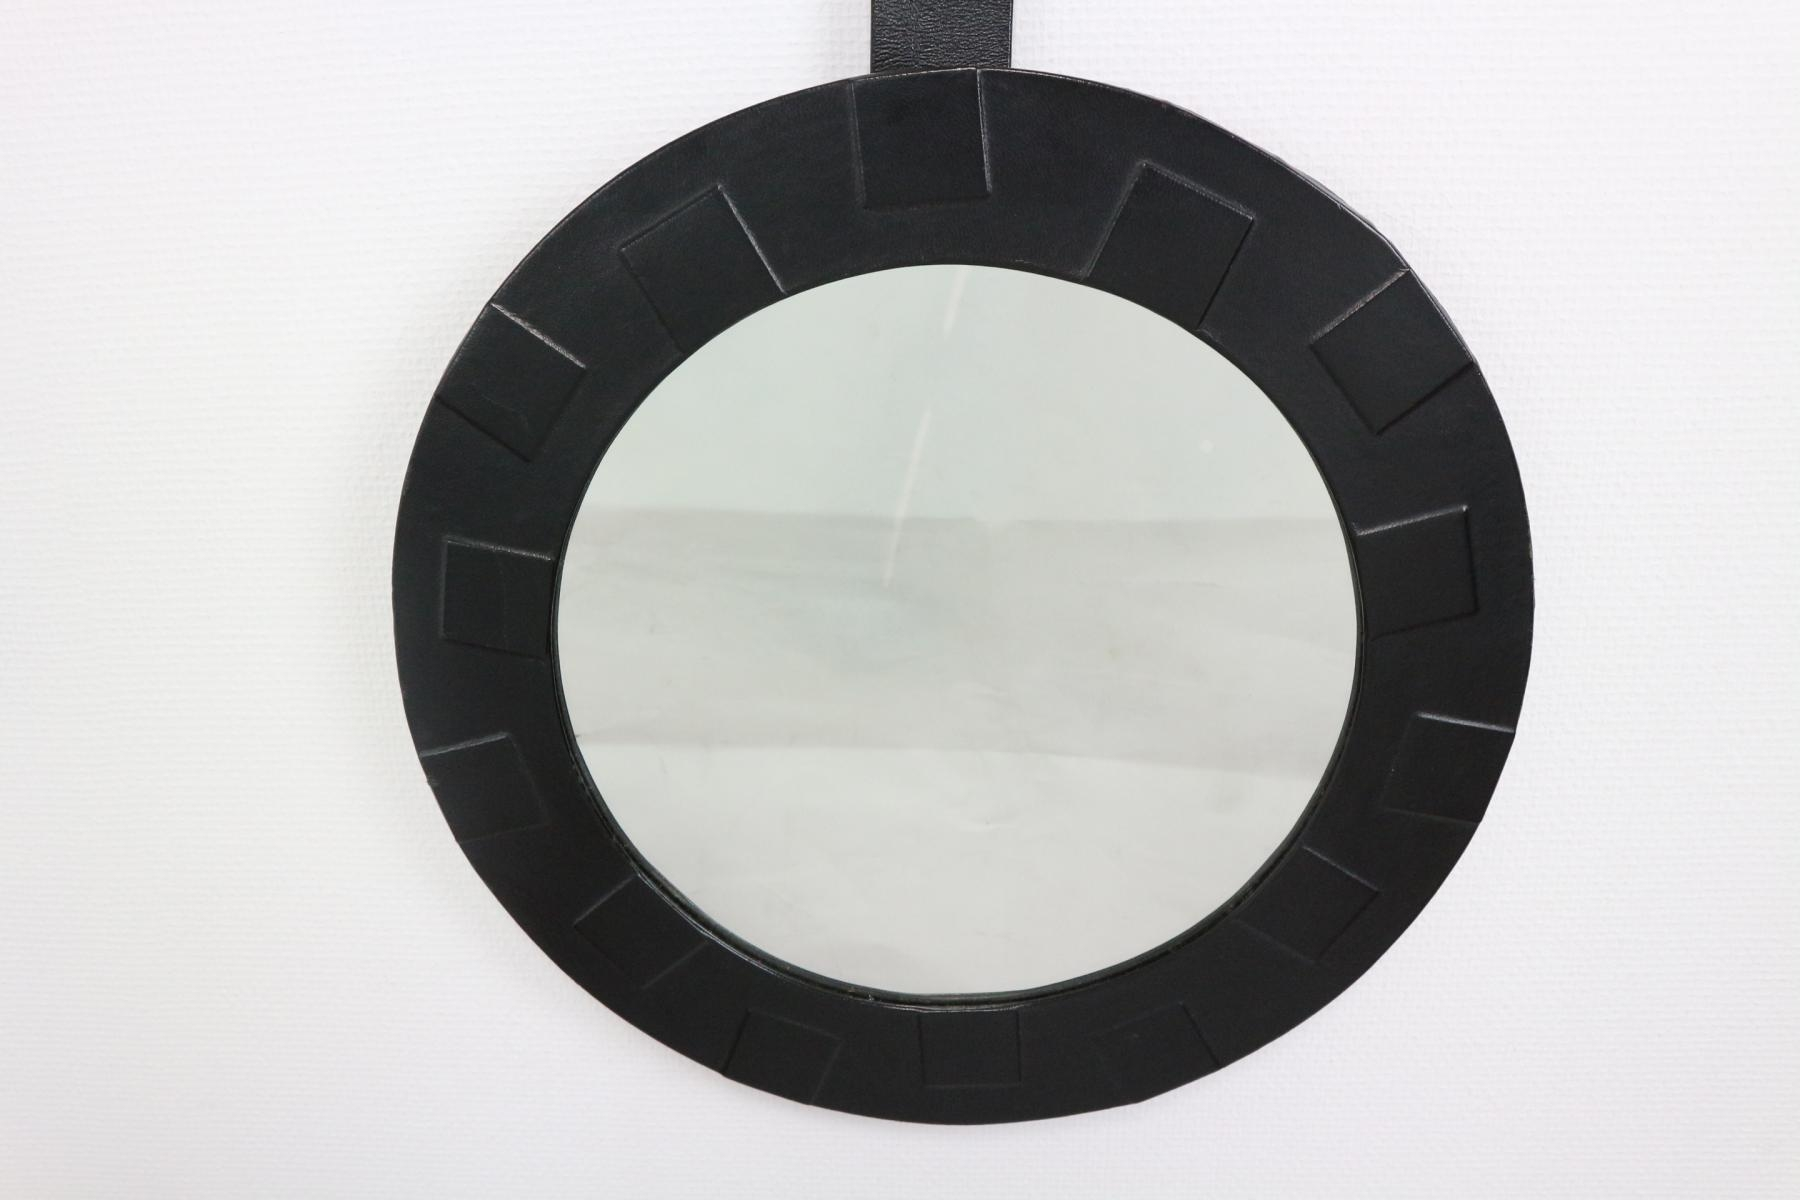 Round Mirror With Leather Frame 1950s For Sale At Pamono Throughout Black Leather Framed Mirror (Image 13 of 15)